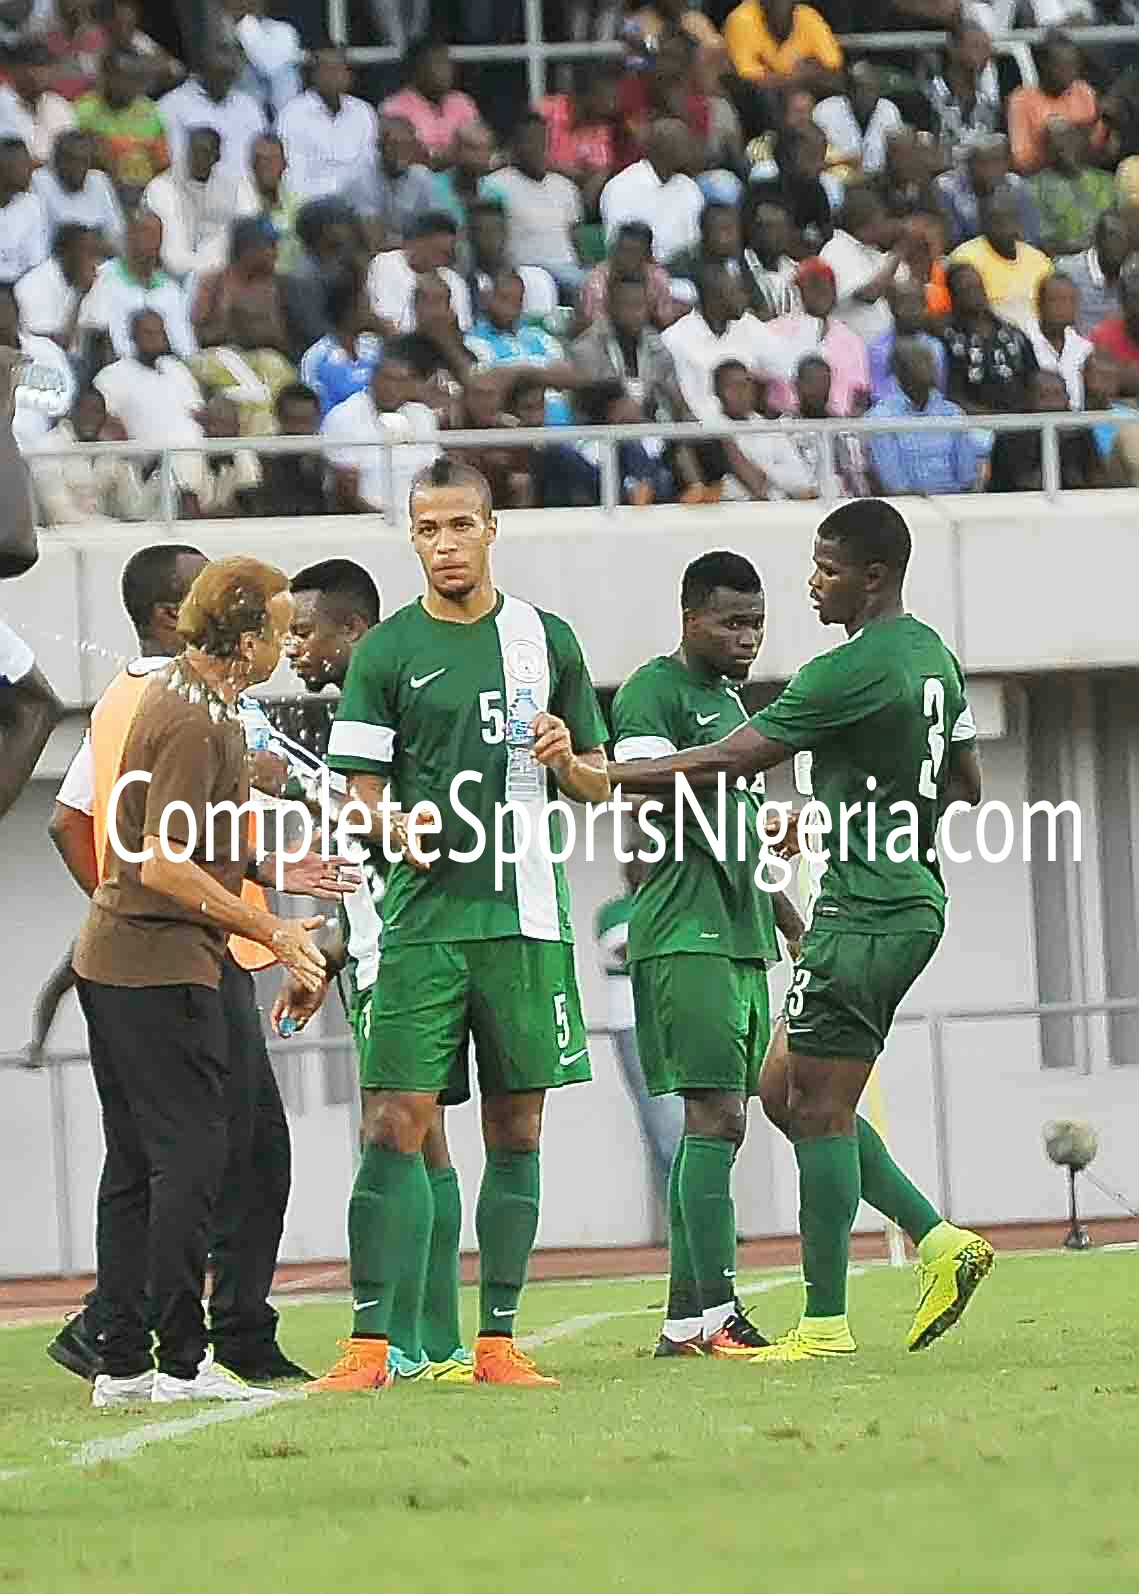 Ikhana Backs Rorh To Lead Super Eagles To World Cup